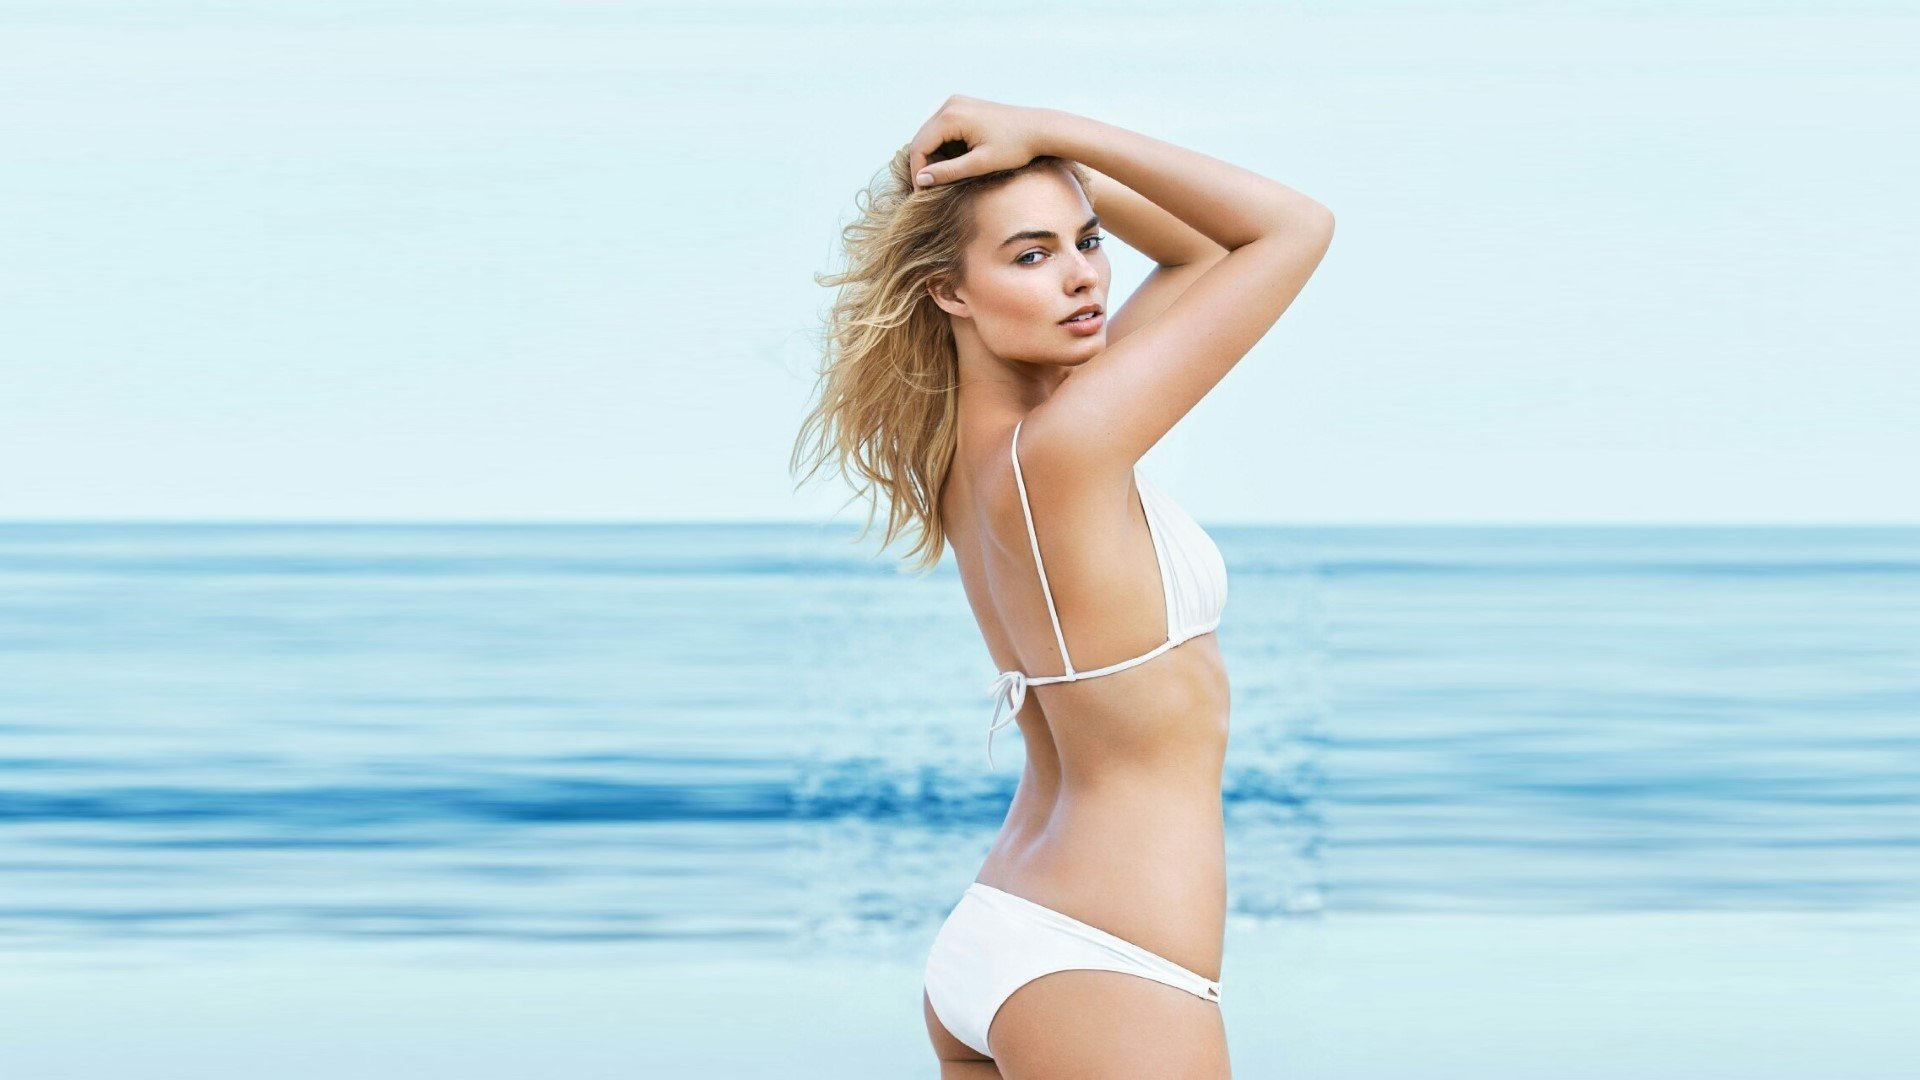 Margot Robbie Bikini Wallpapers